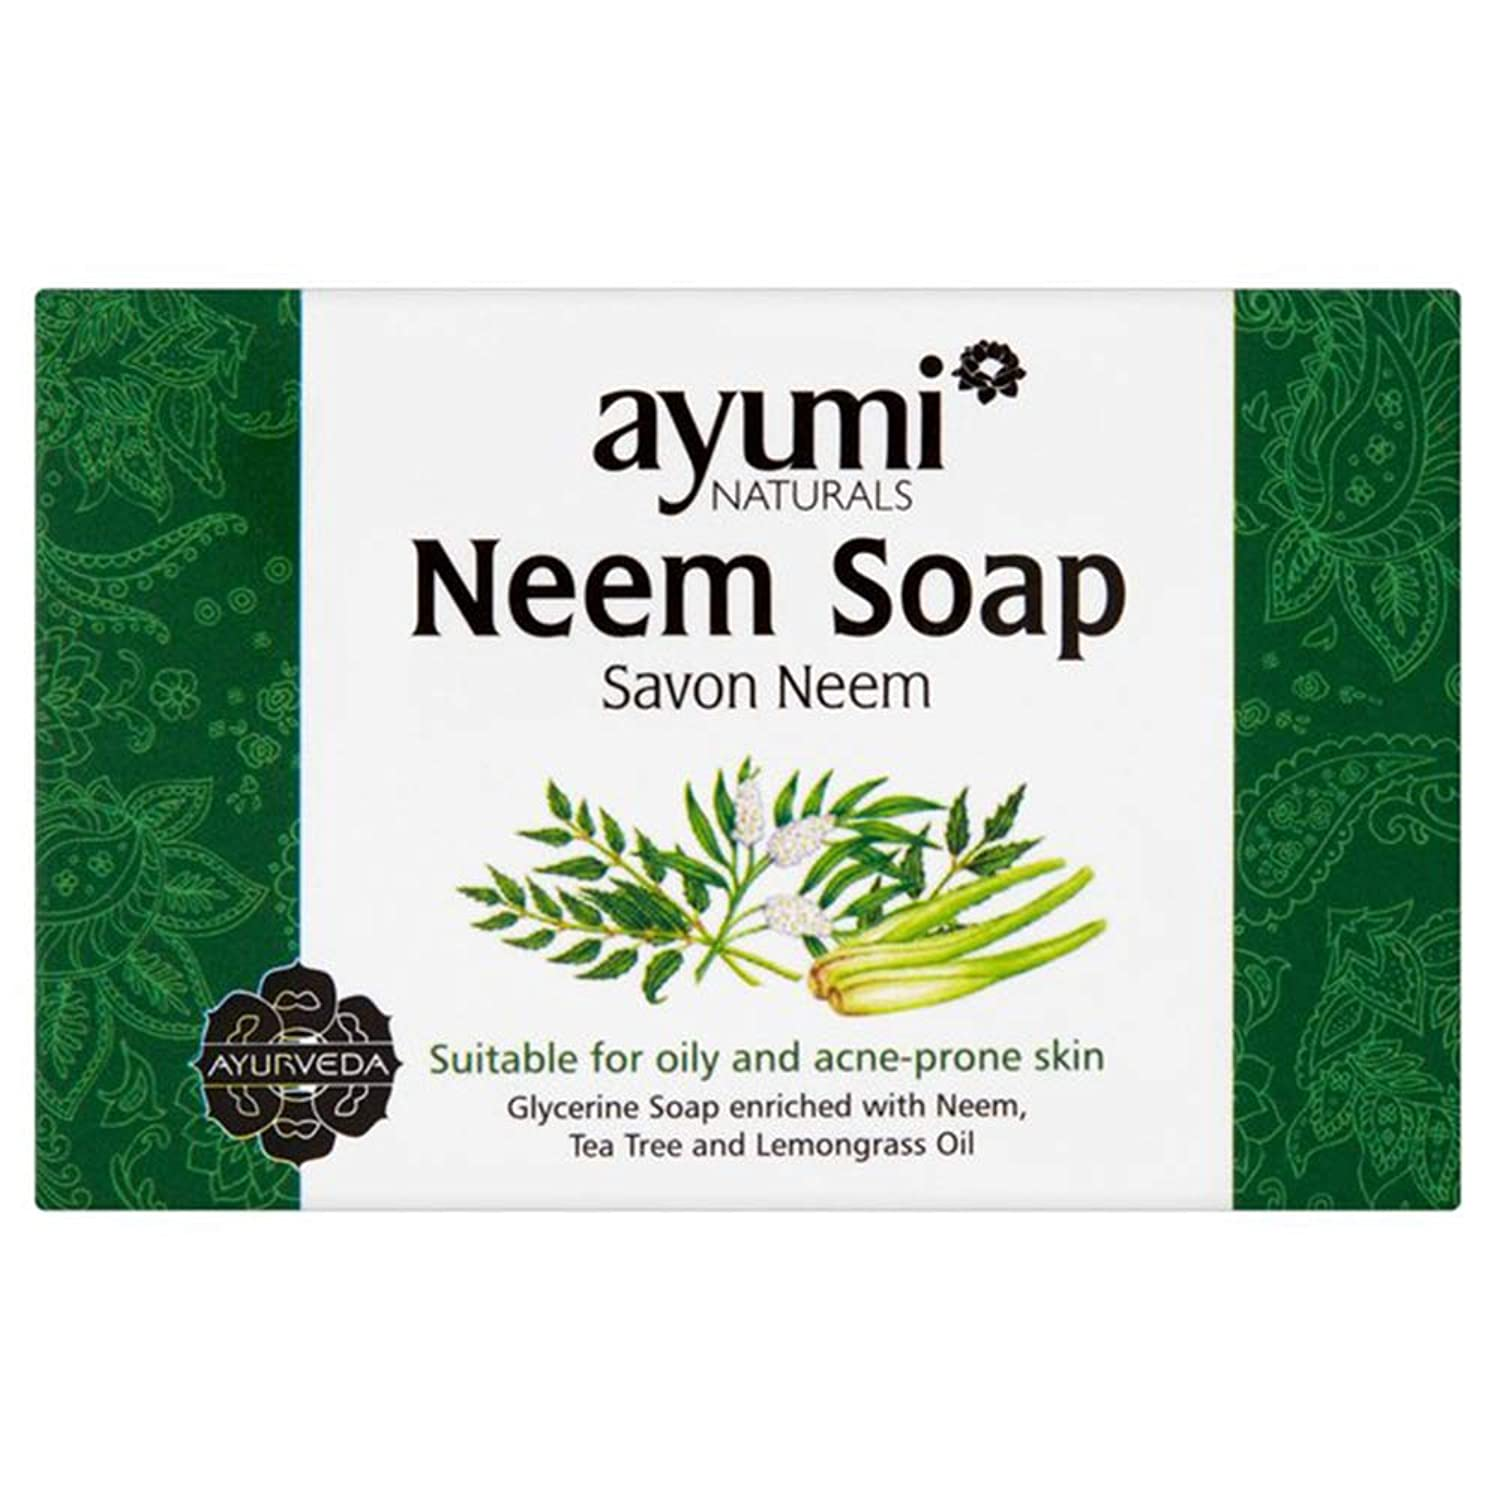 Ayuuri Ayurvedic Herbal Natural Neem Soap 100g by Ayuuri